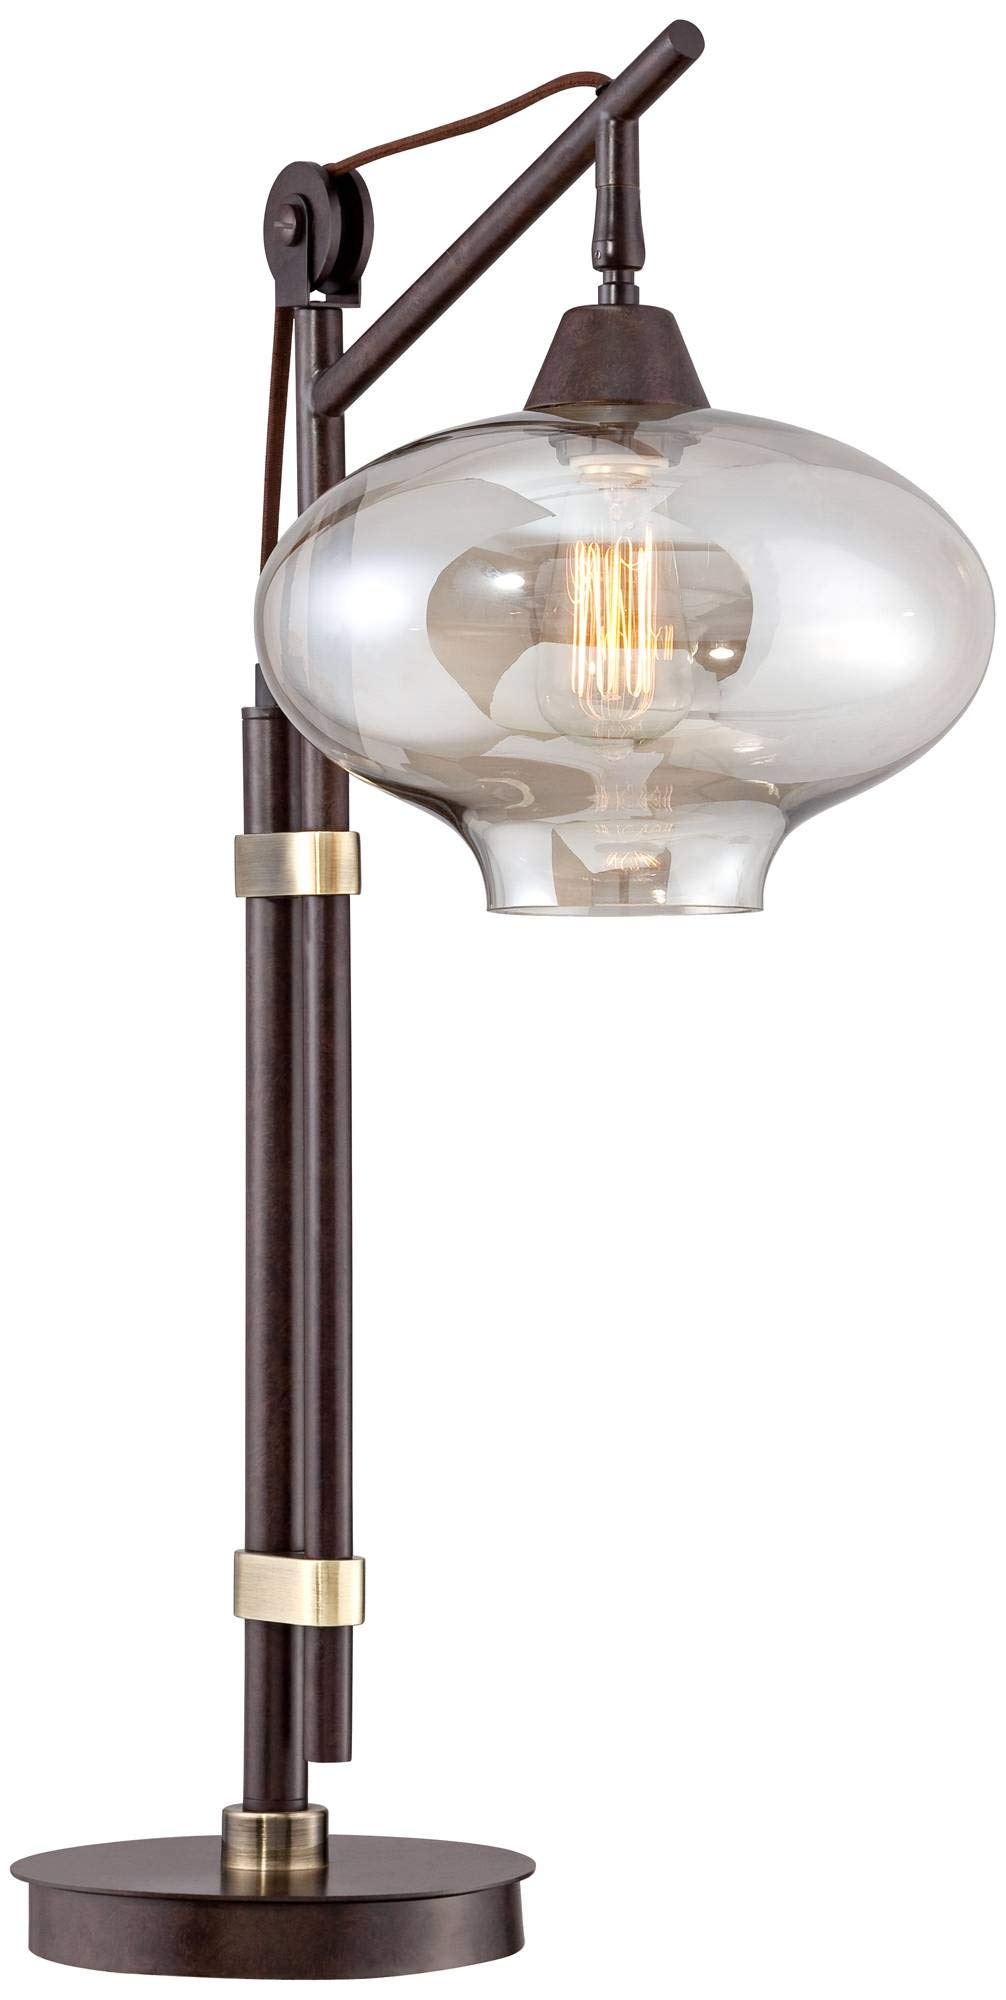 Calyx Industrial Desk Table Lamp Antique Bronze Brass Cognac Glass Shade Edison Style for Living Room Bedroom Office - Franklin Iron Works by Franklin Iron Works (Image #7)